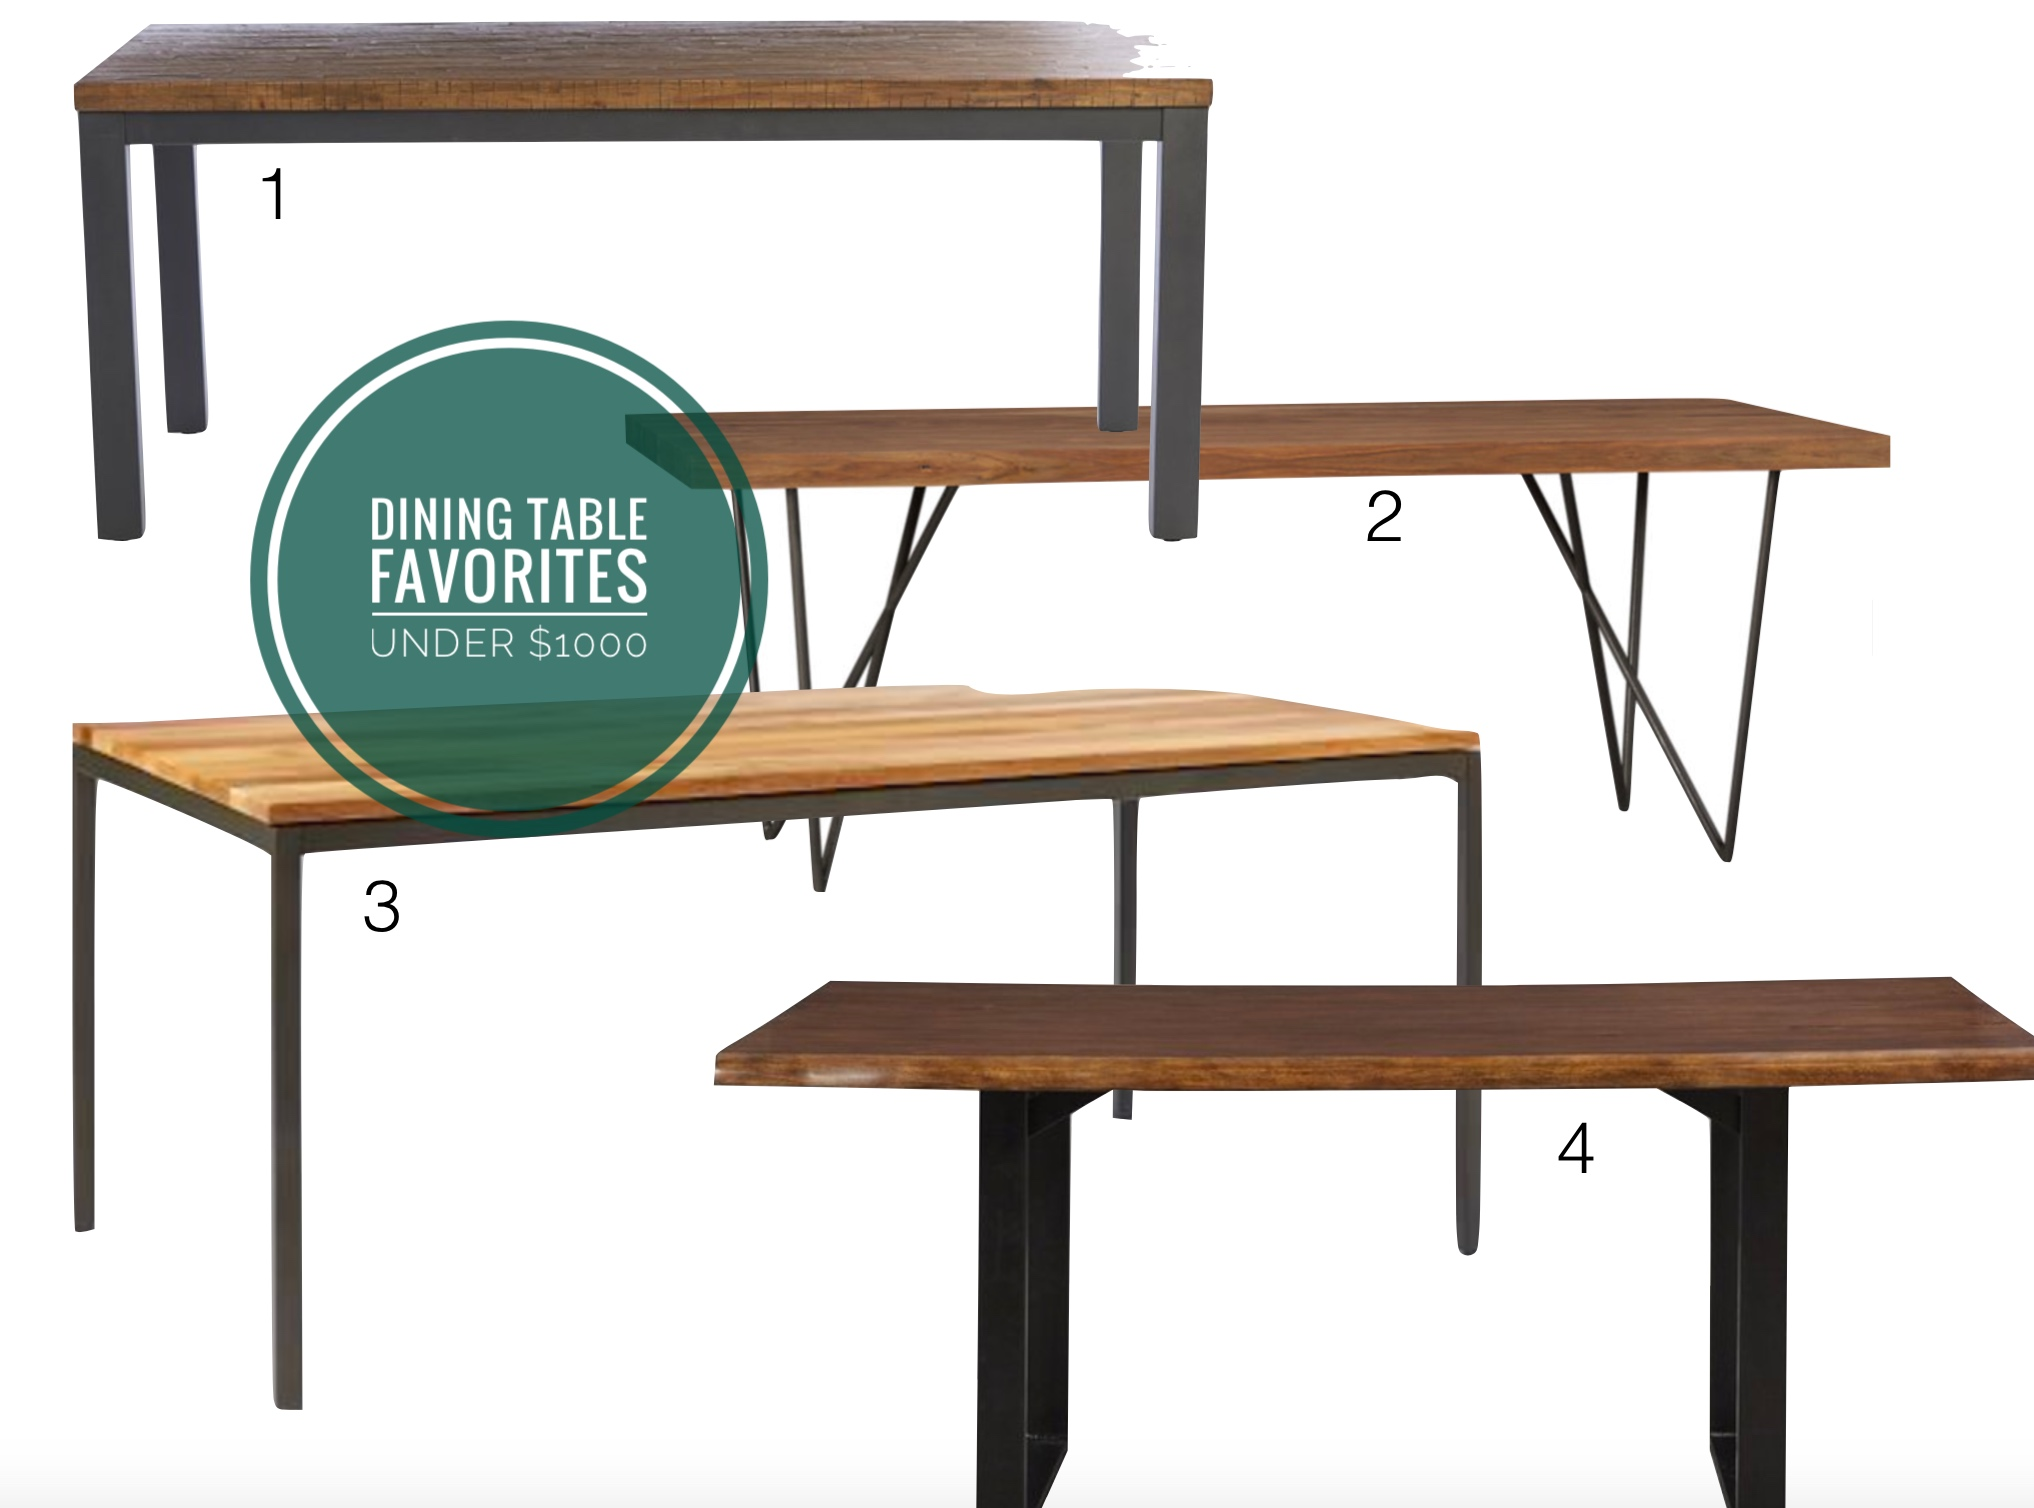 affordable favorite dining tables — all under $1000